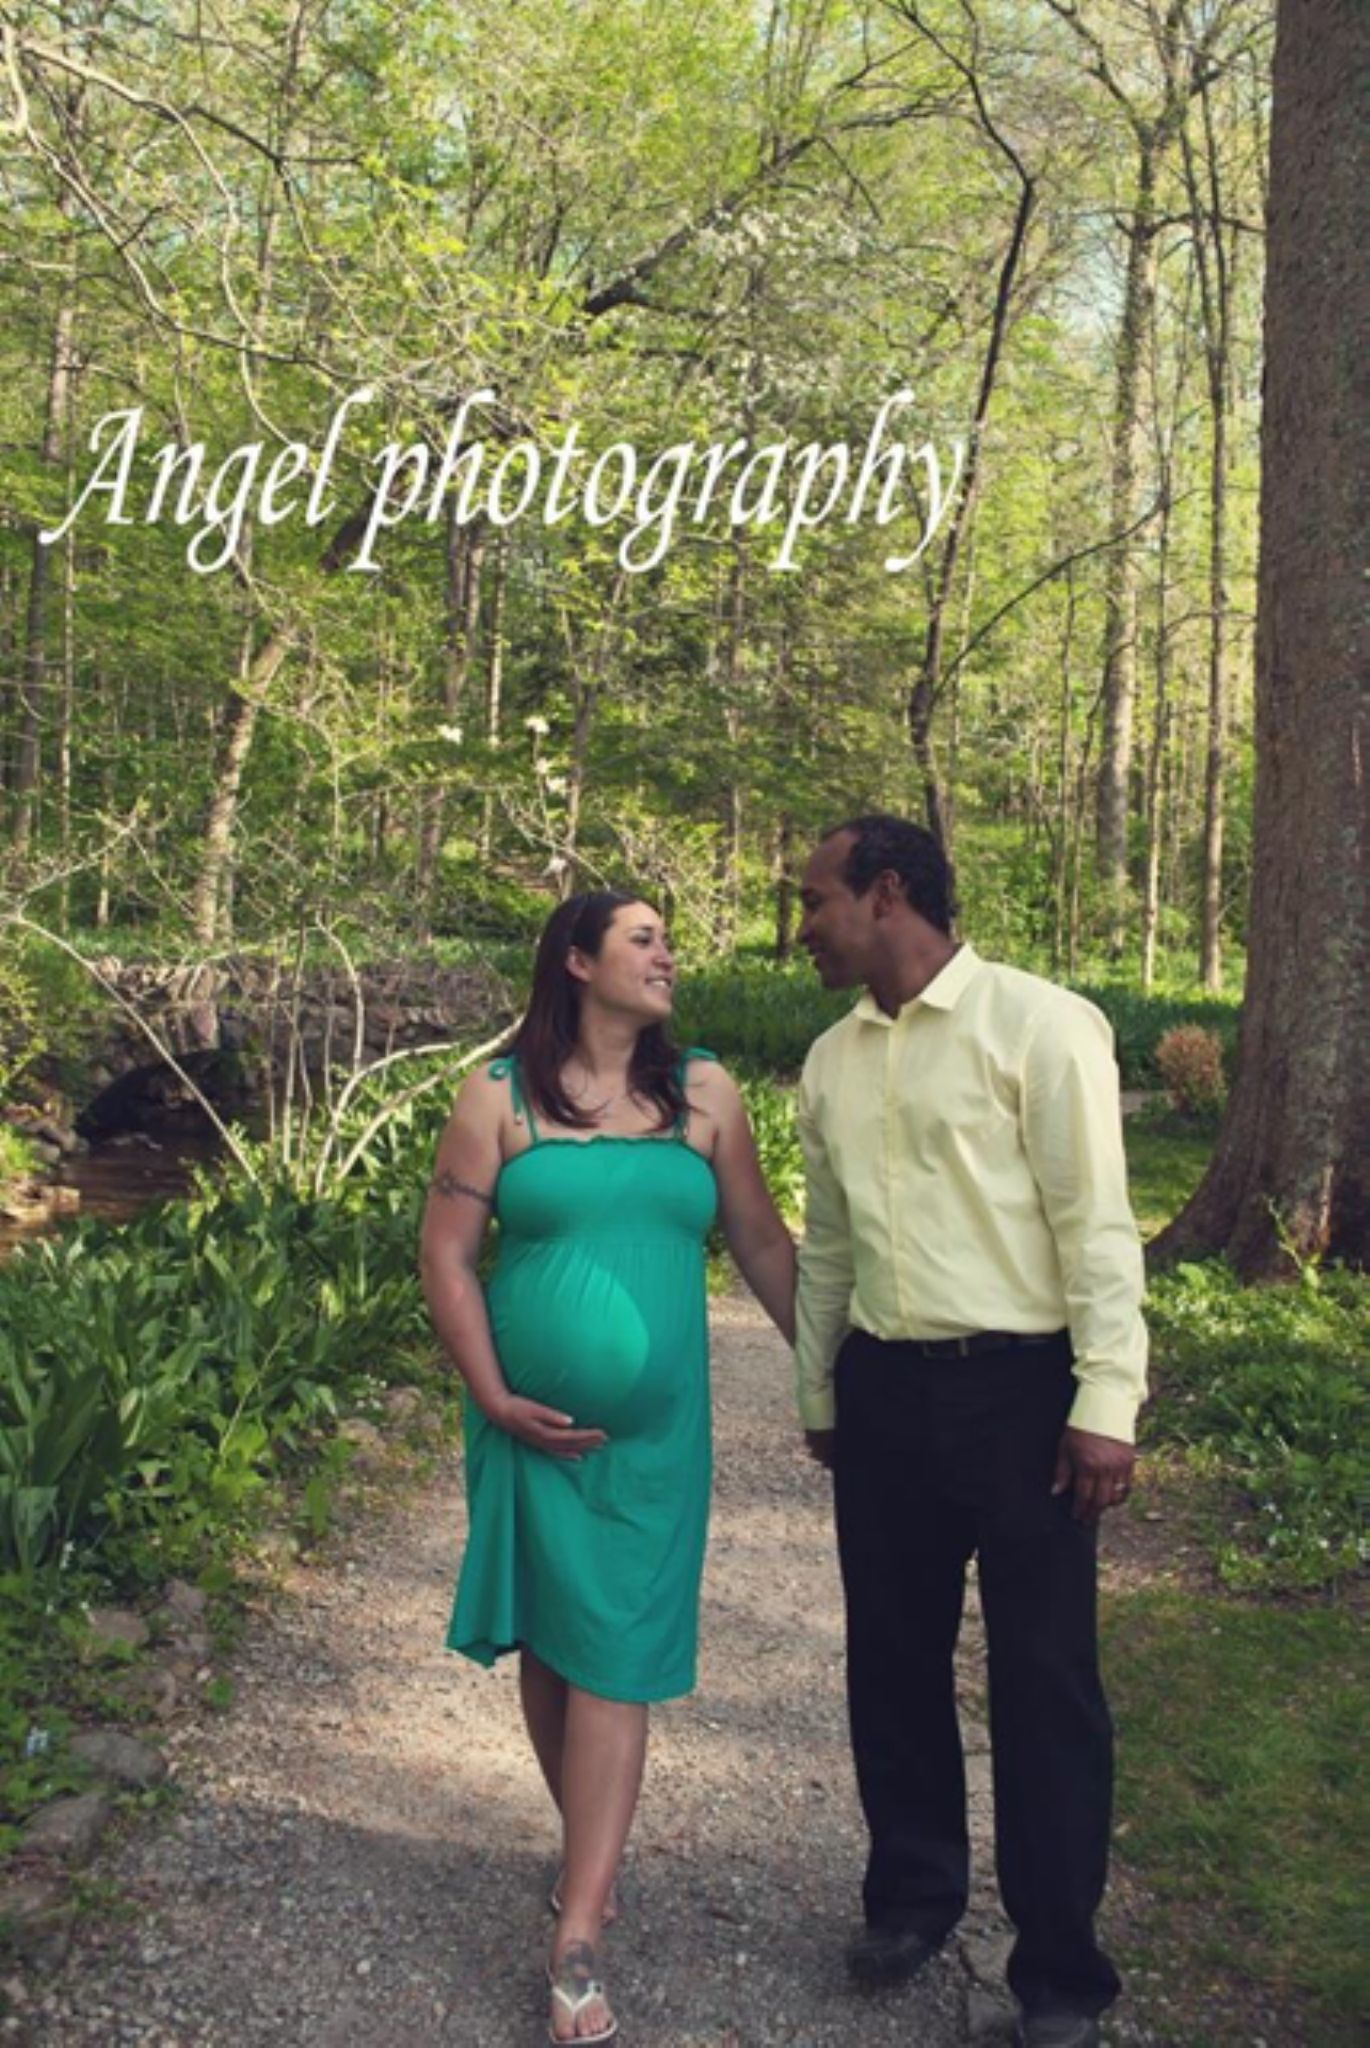 IMG_0929 by Angelphotography1979